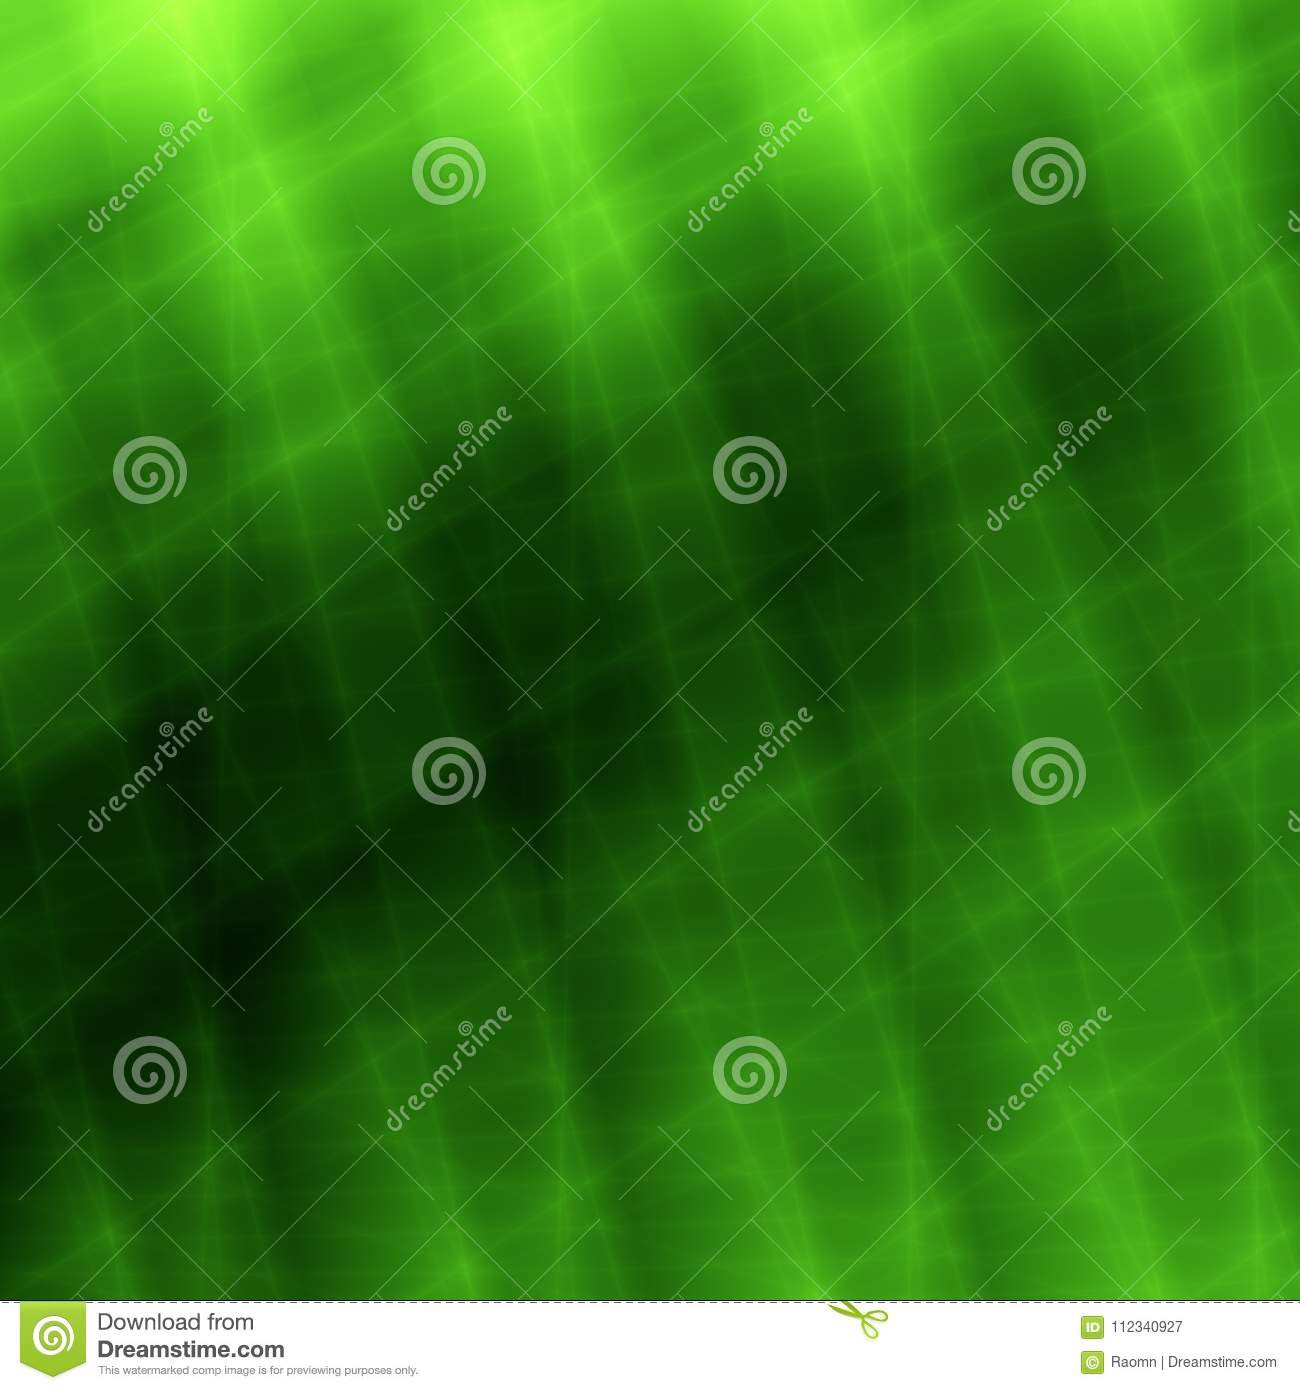 Texture green wallpaper modern technology eco background